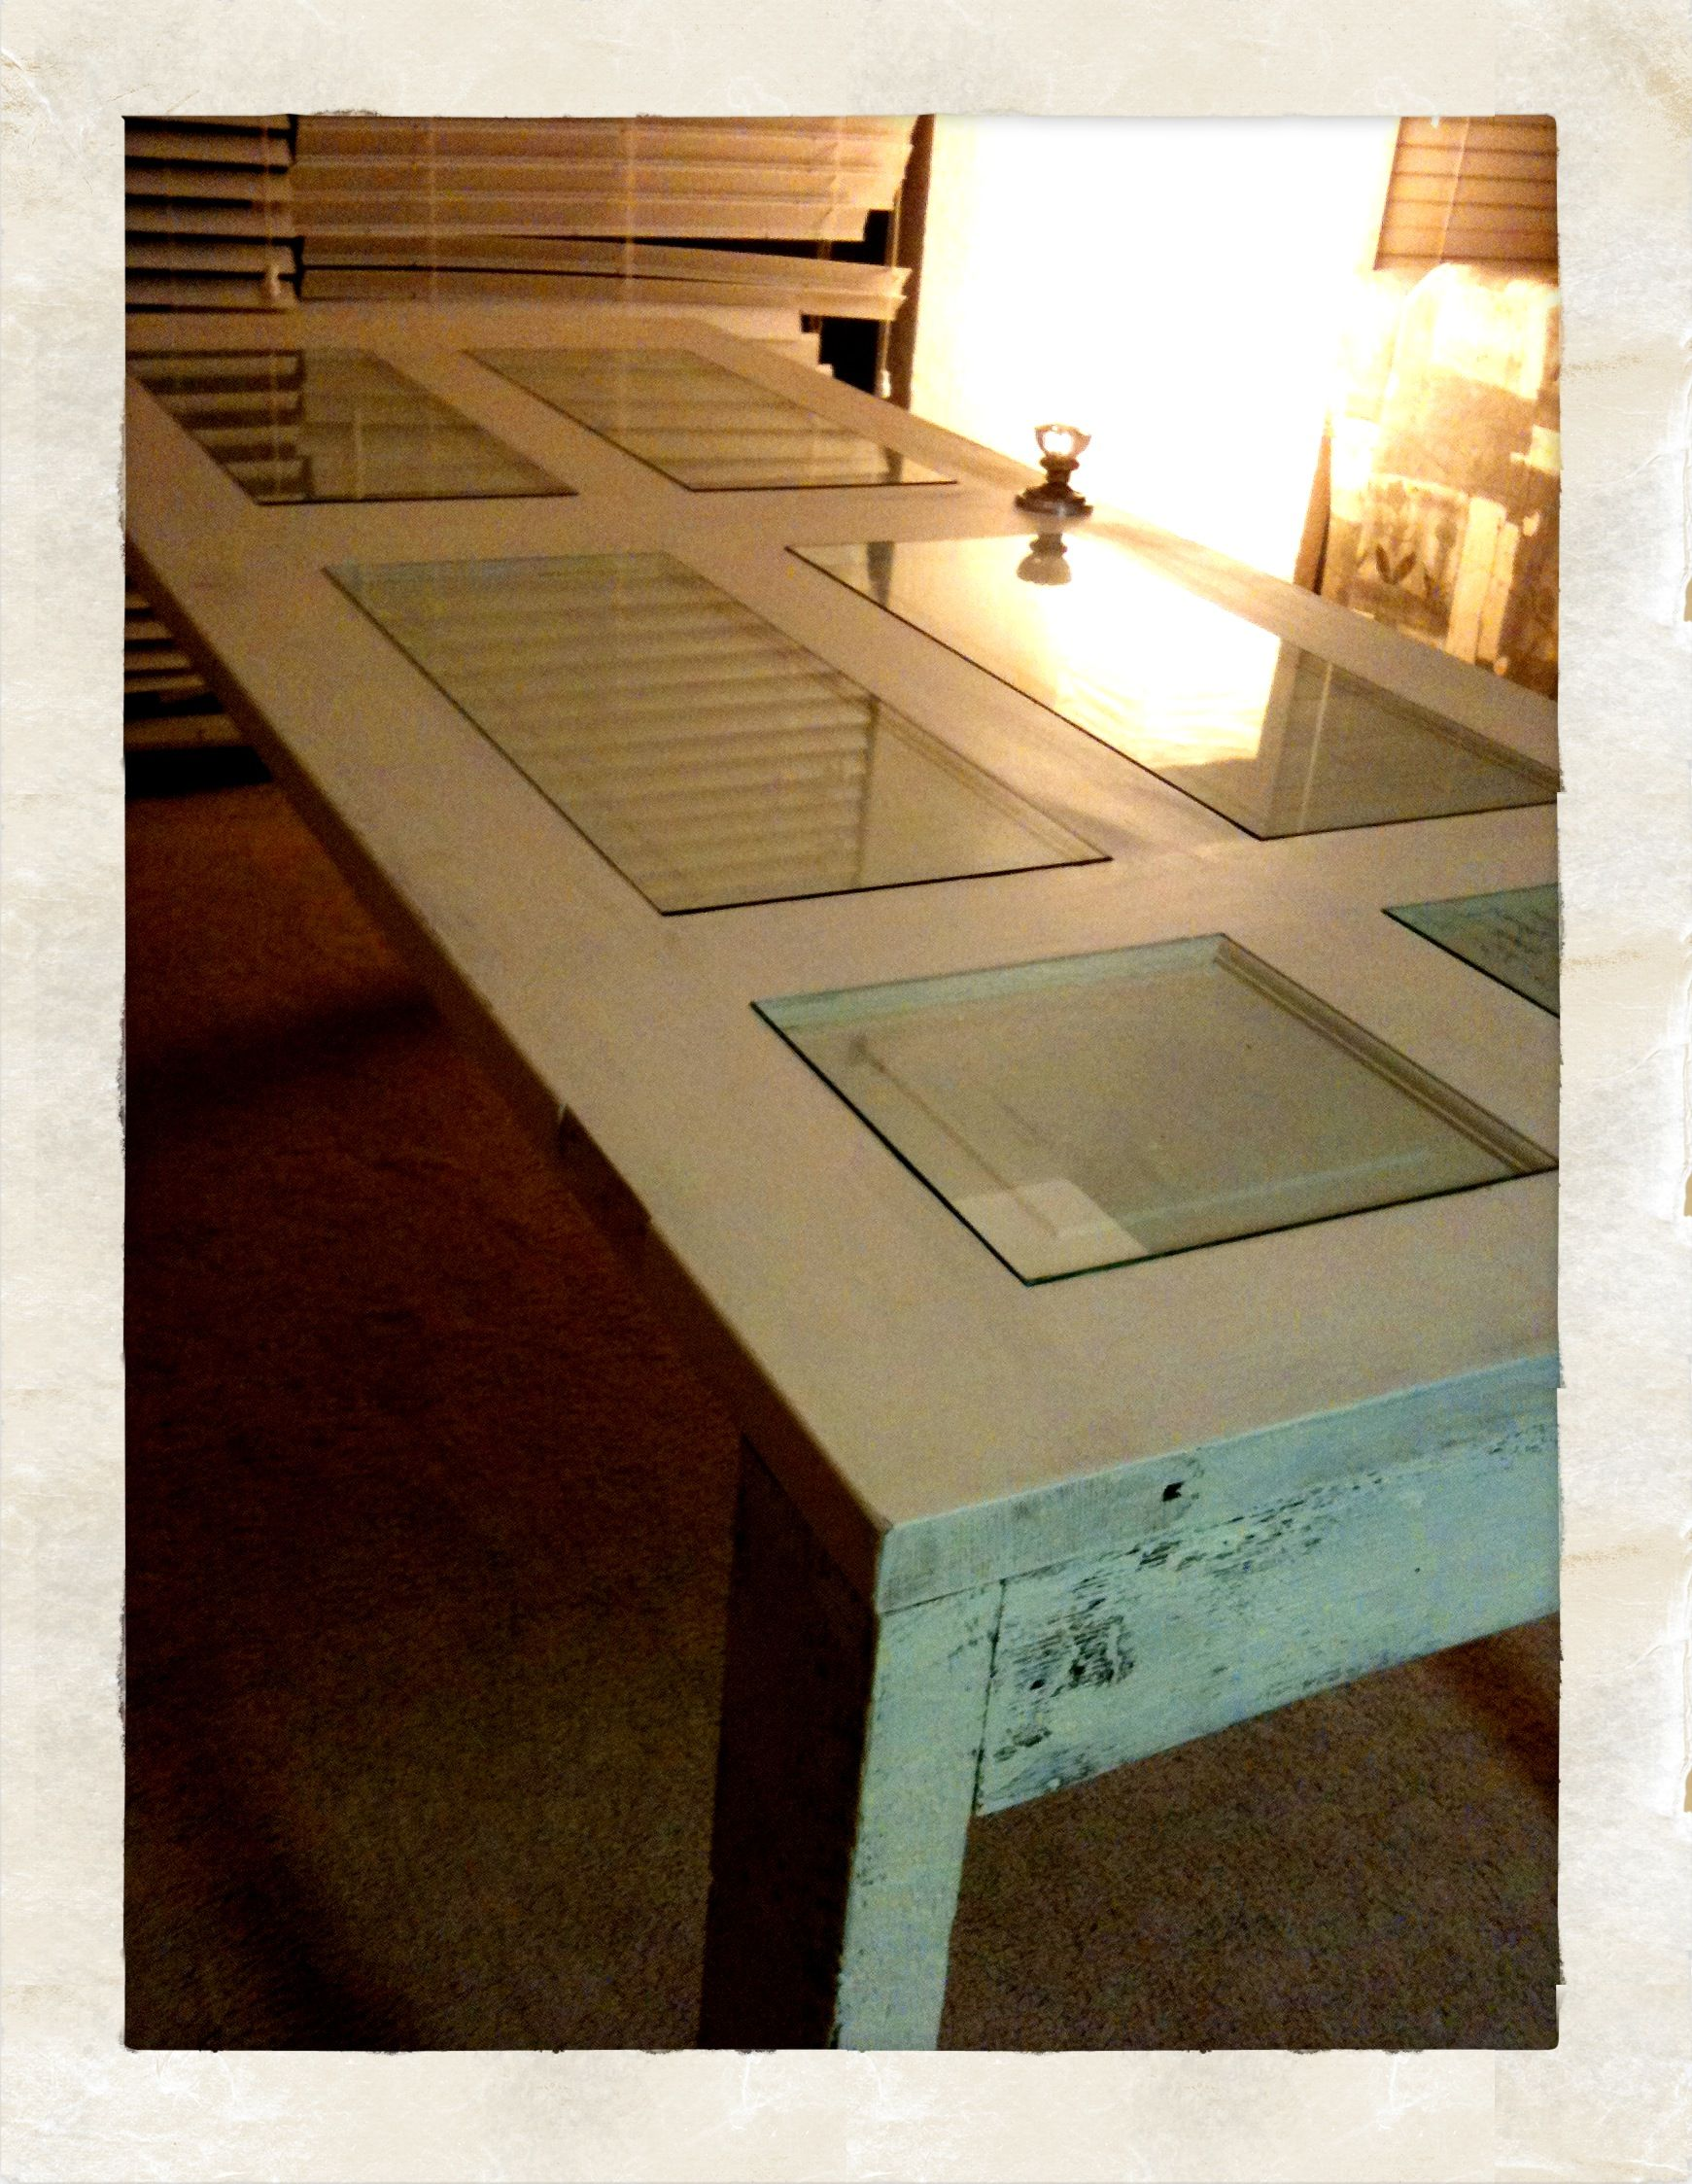 Thinking about using some louvered doors we just took down to create some outdoor tables.